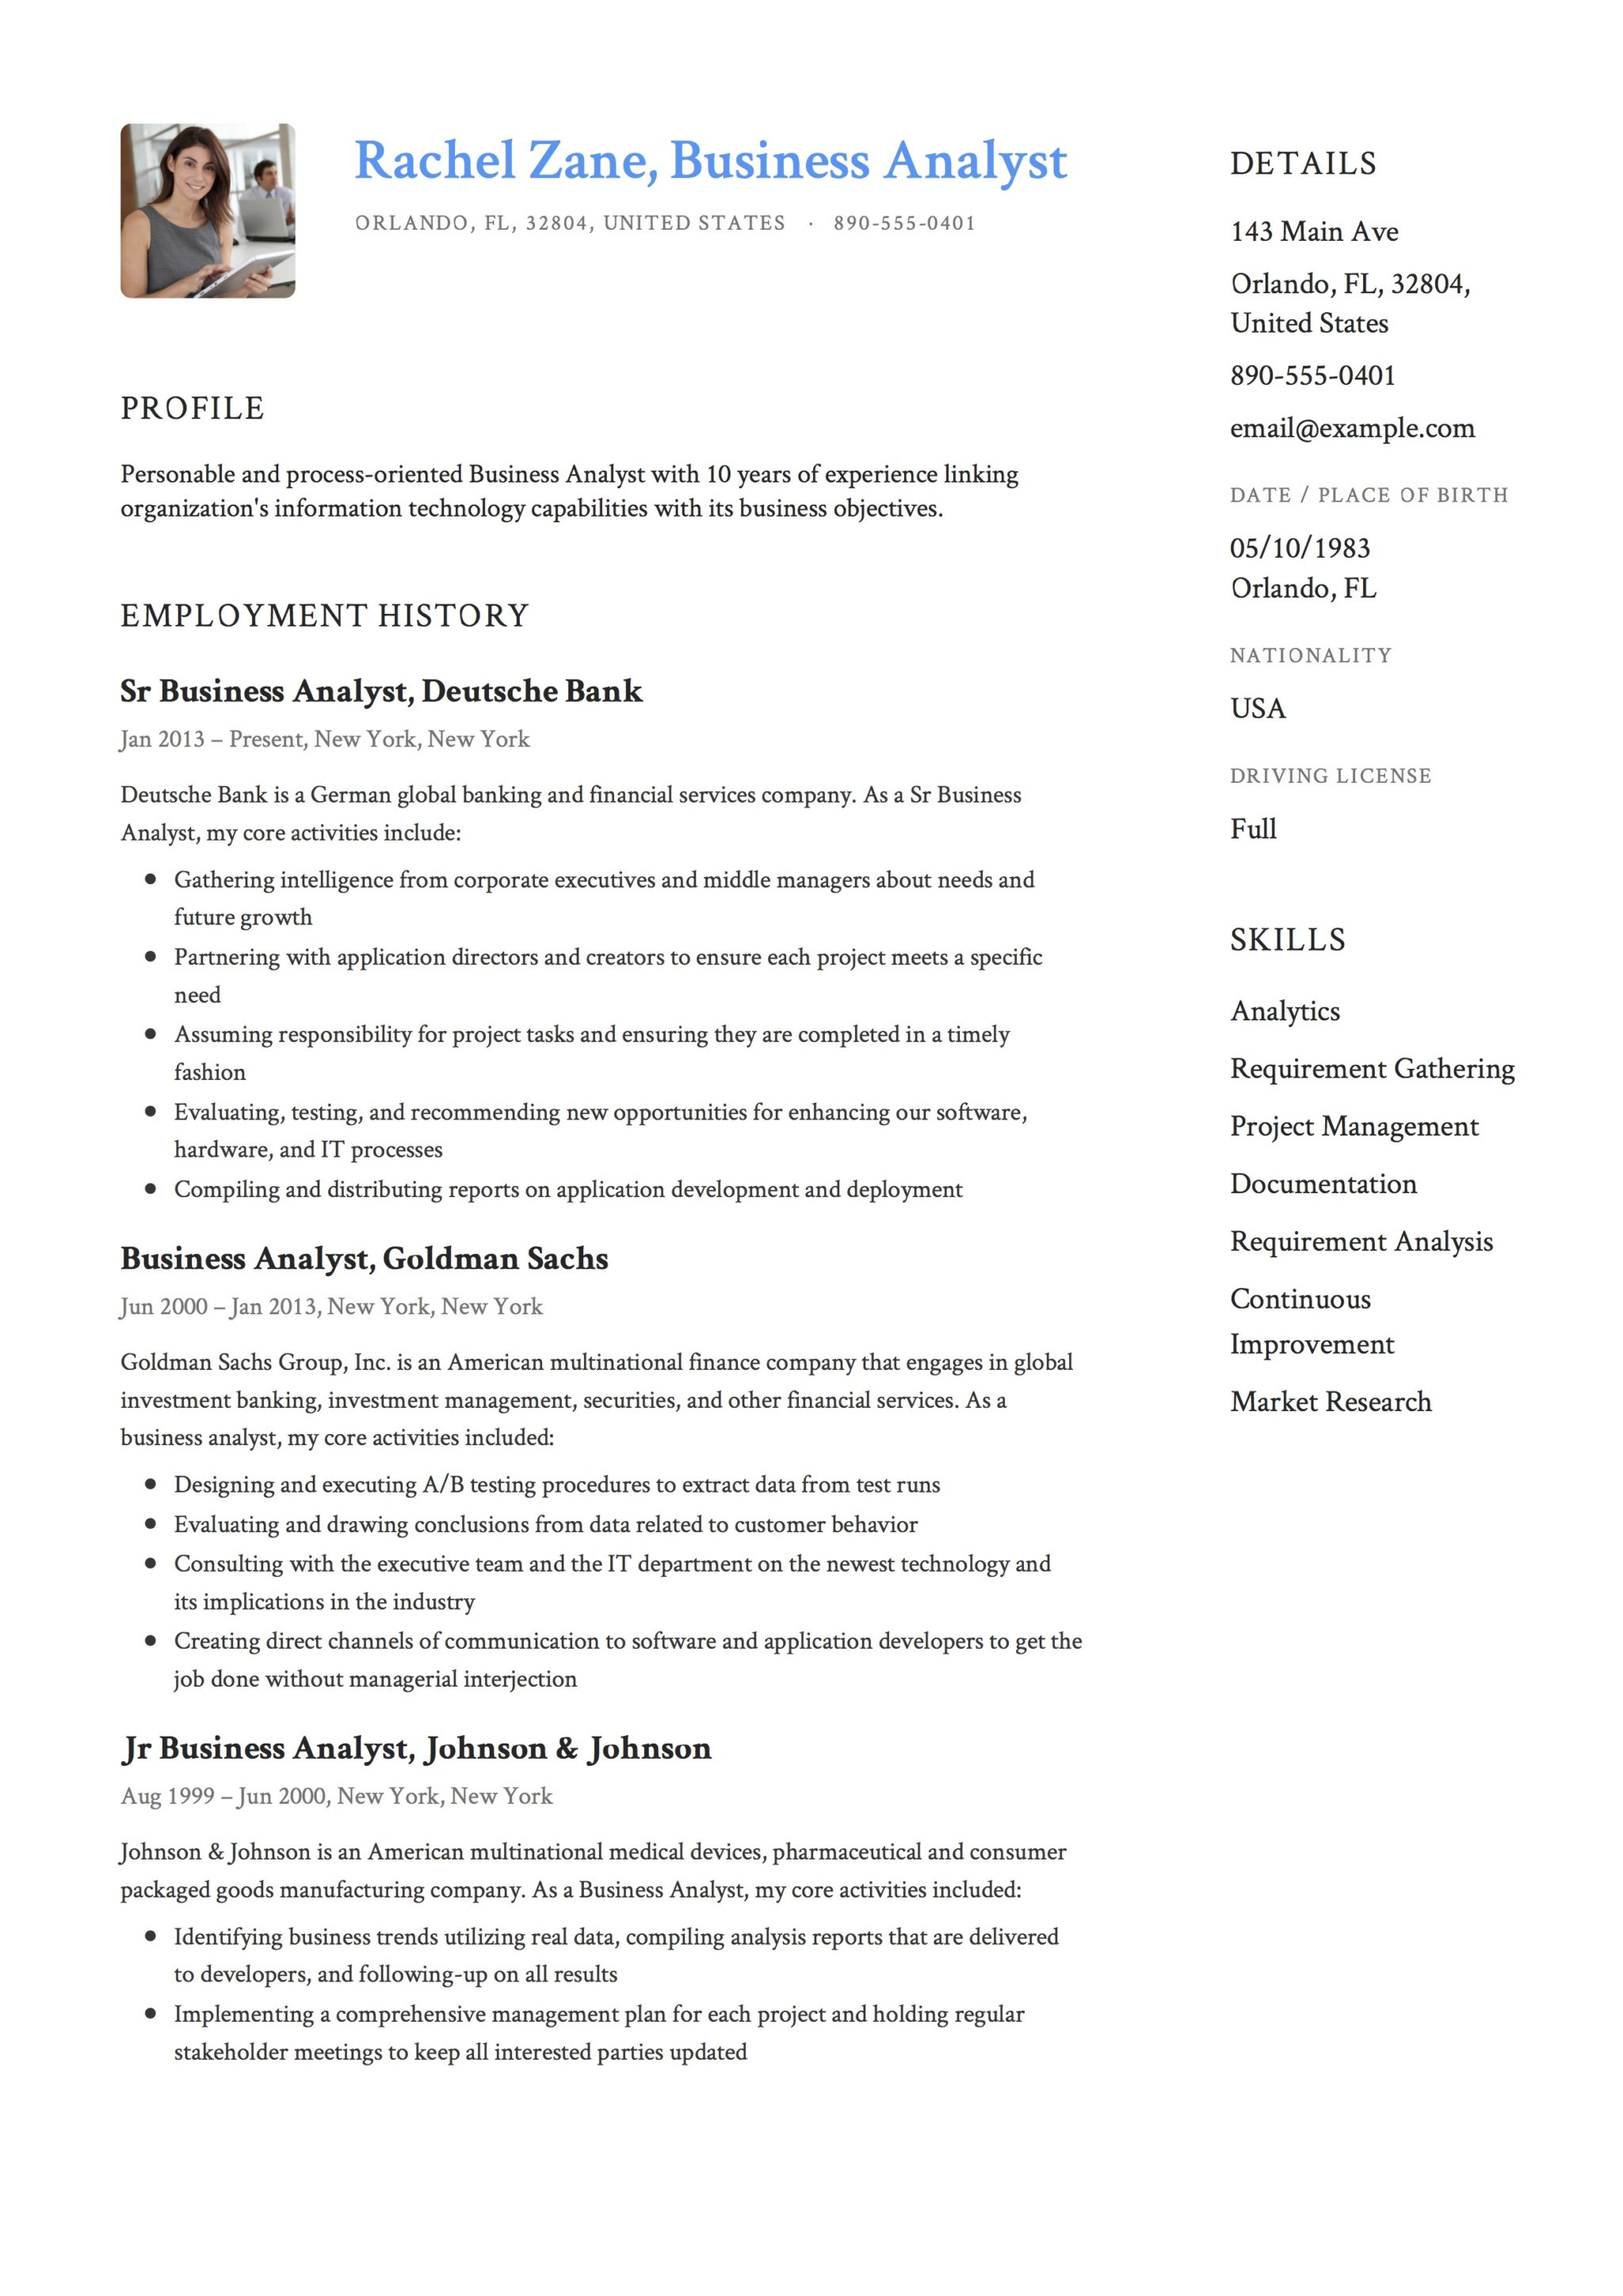 12 business analyst resume samples 2018 free downloads business analyst resume template friedricerecipe Gallery